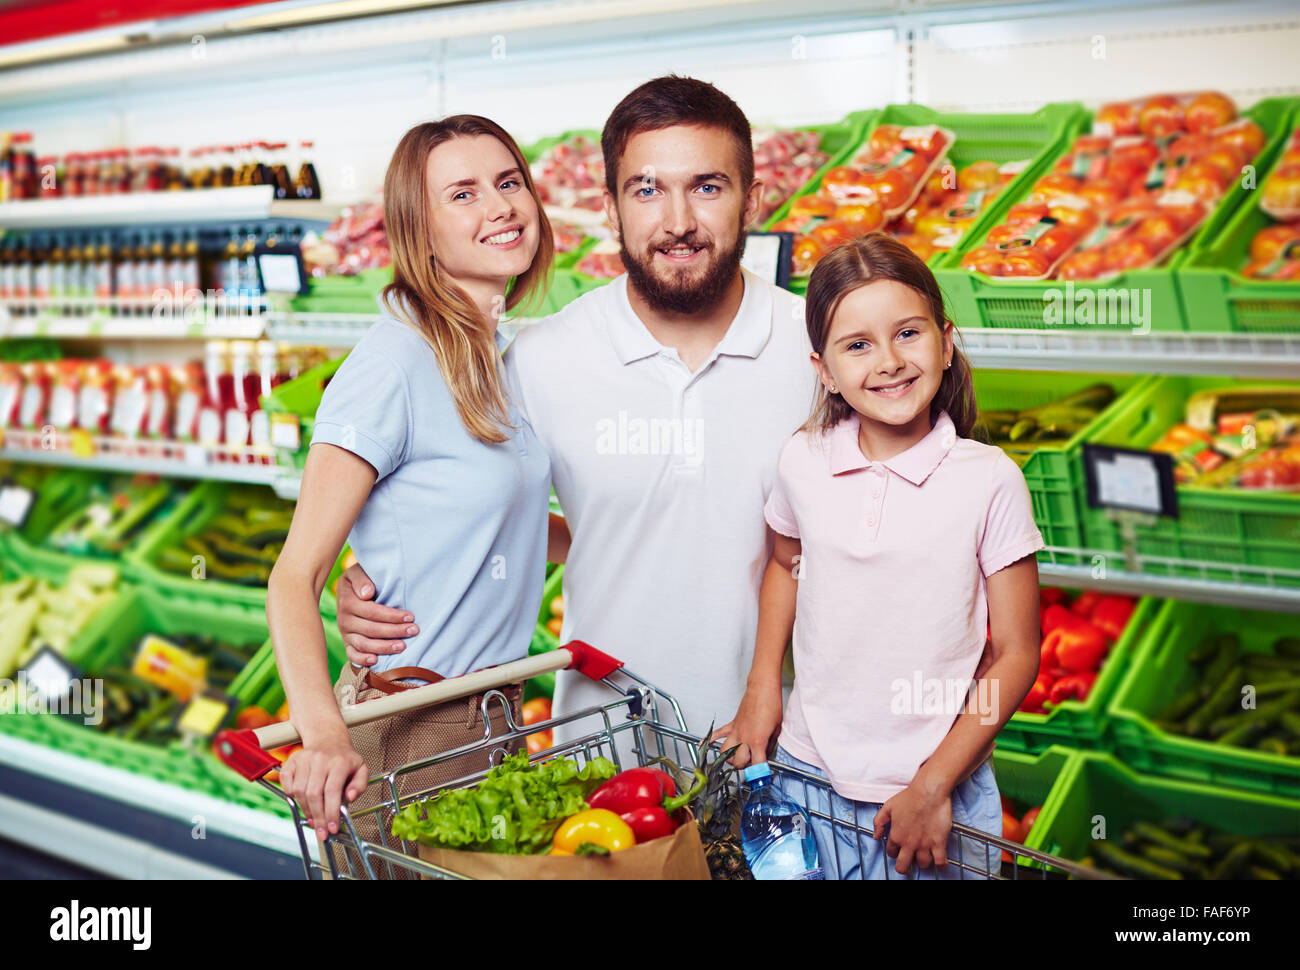 Portrait of happy family shopping for groceries in supermarket - Stock Image